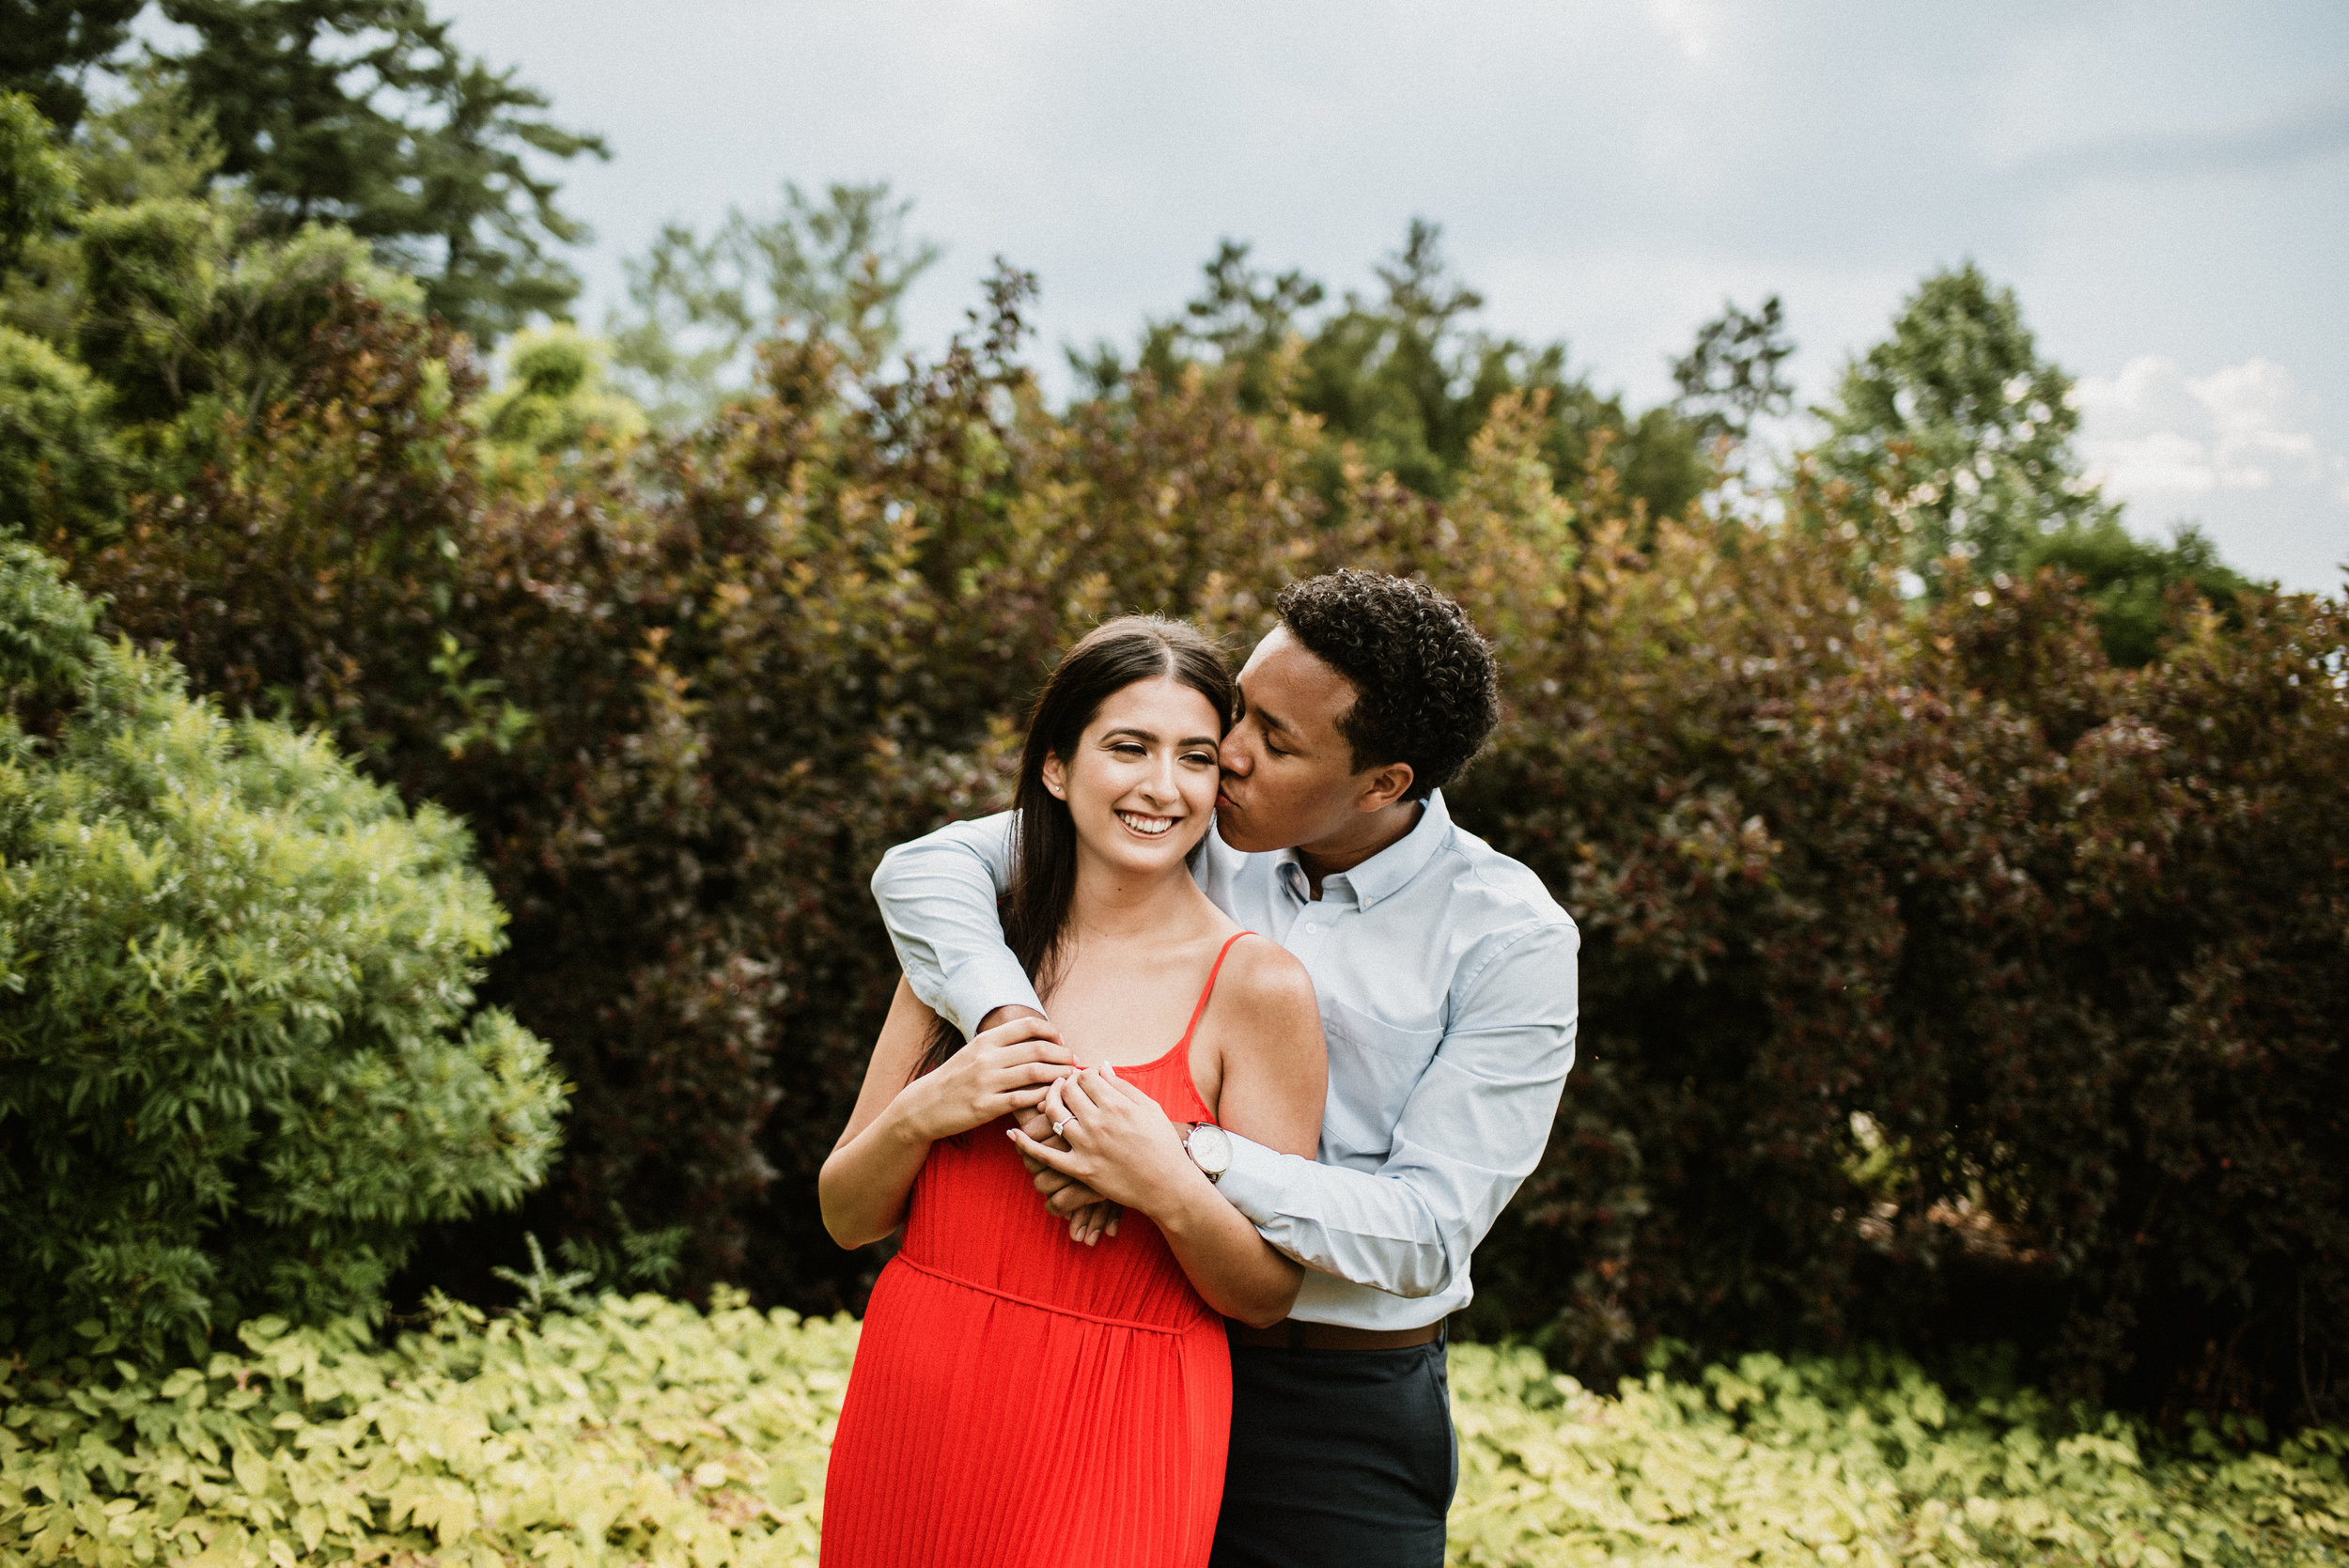 Cathy And Xavier - Stormy Sunshine Engagement Session | The Morton Arboretum | Lisle, IL | Chicago Wedding Photographer